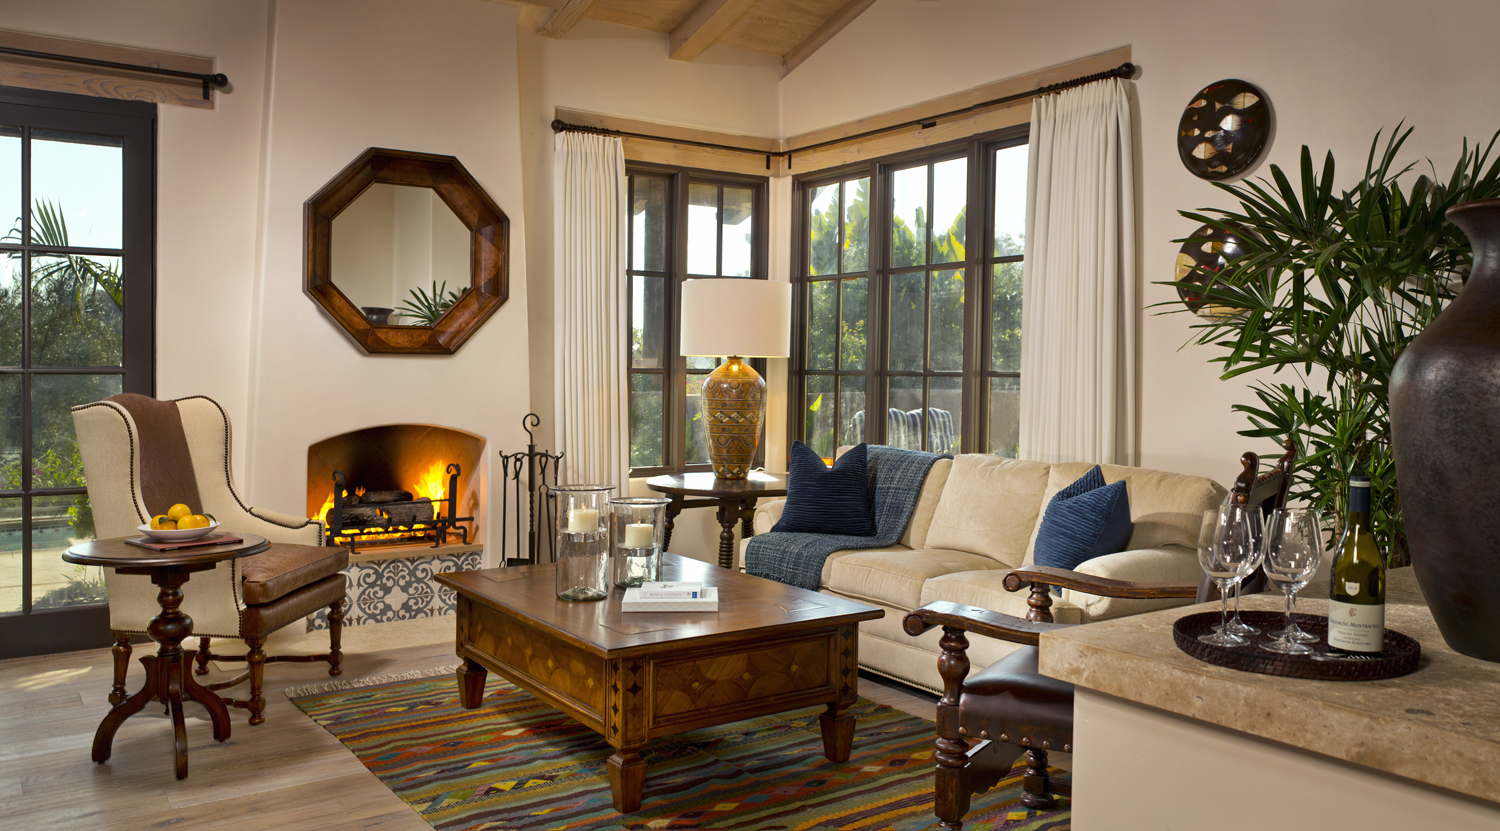 Valencia hotel suite living room with fireplace, couch, windows to outside at Rancho Valencia luxury San Diego resort